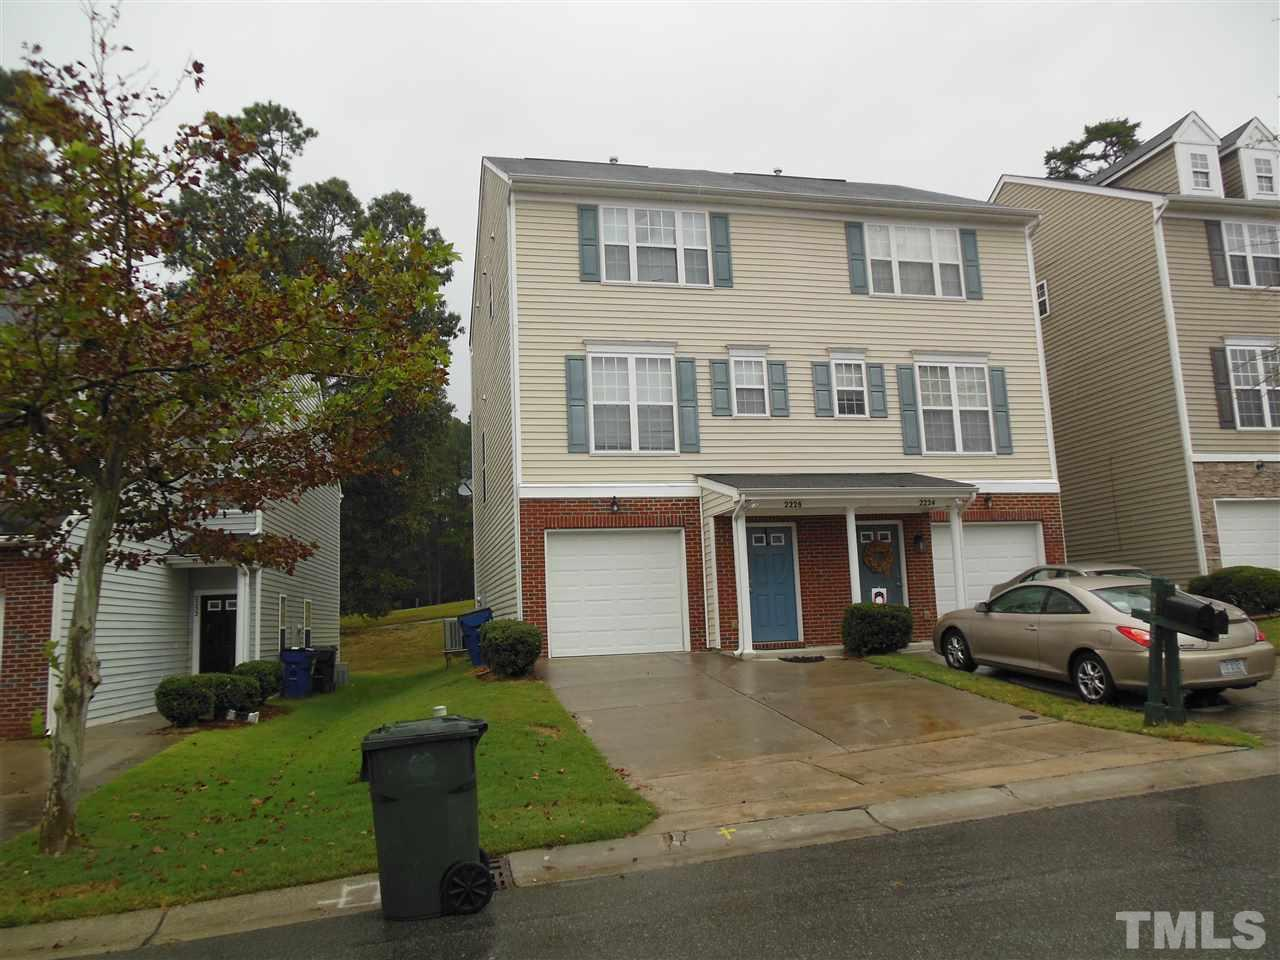 Three story townhome in the Hedingham community, overlooks golf course in back of home, two bedrooms, two full bathrooms, living area, eat in kitchen, back deck - overlooking golf course, downstairs room / office, one car garage area.